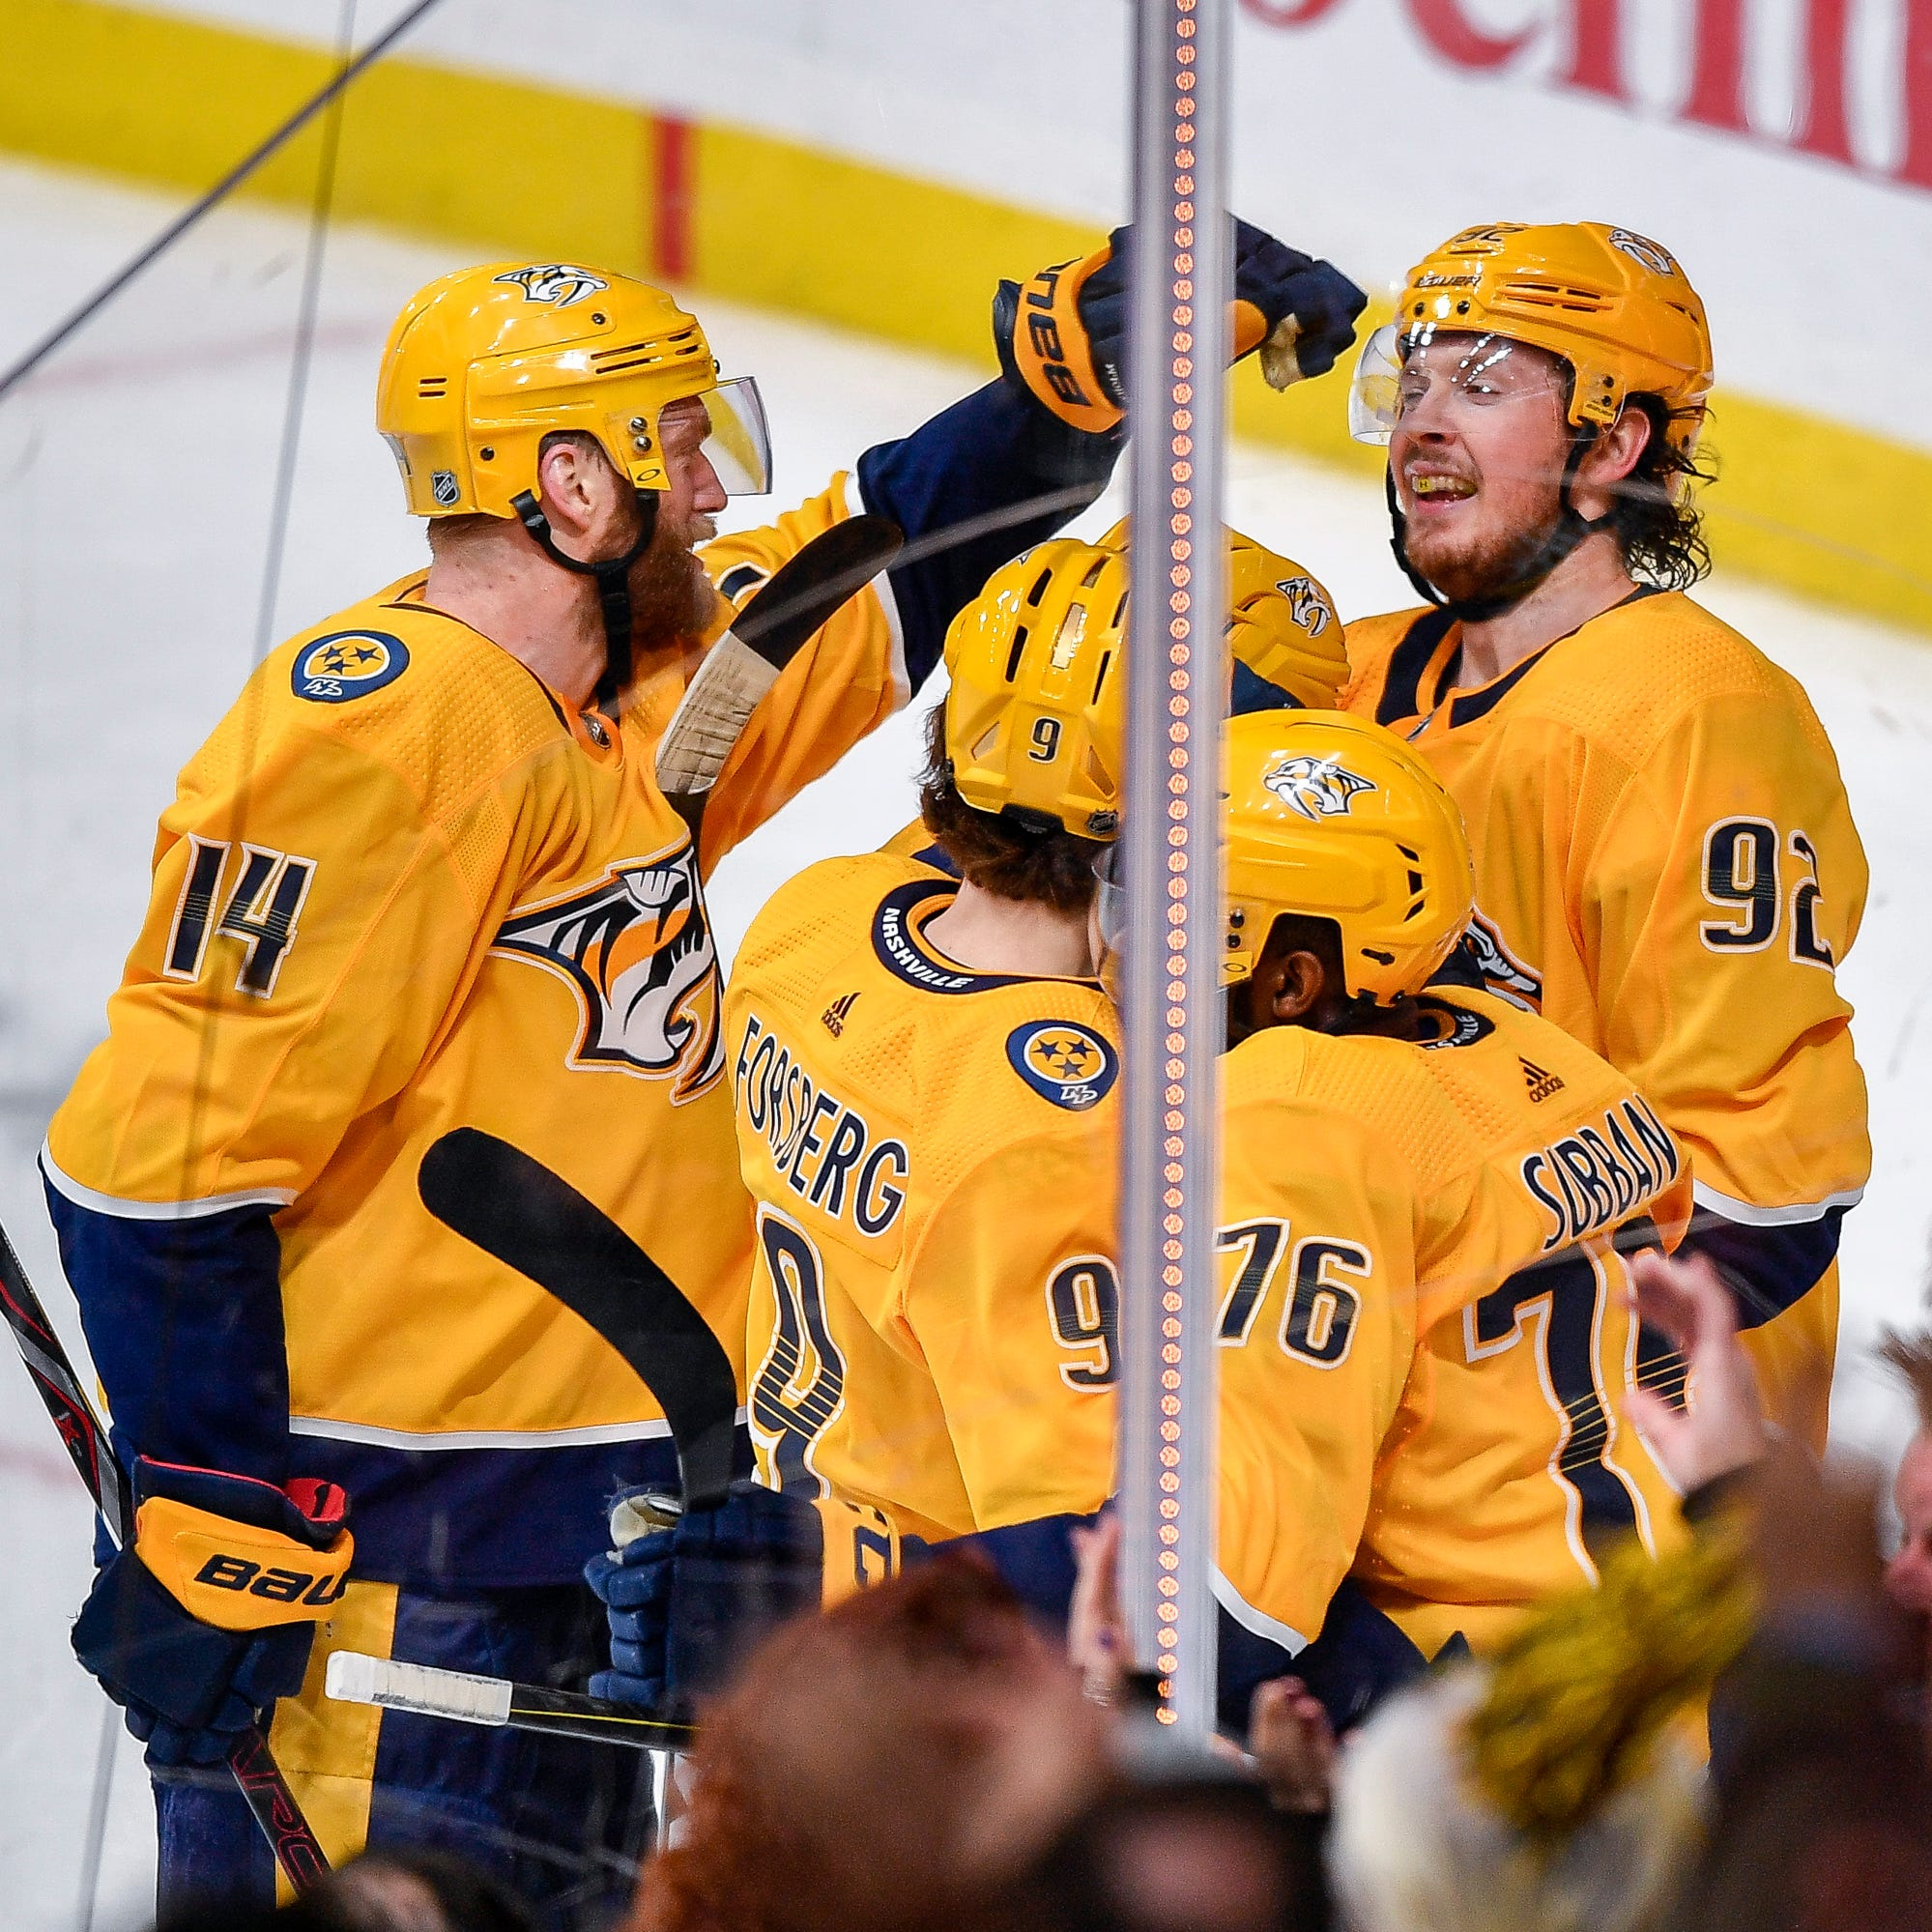 Ryan Johansen's late goal gives Predators big victory against Canucks